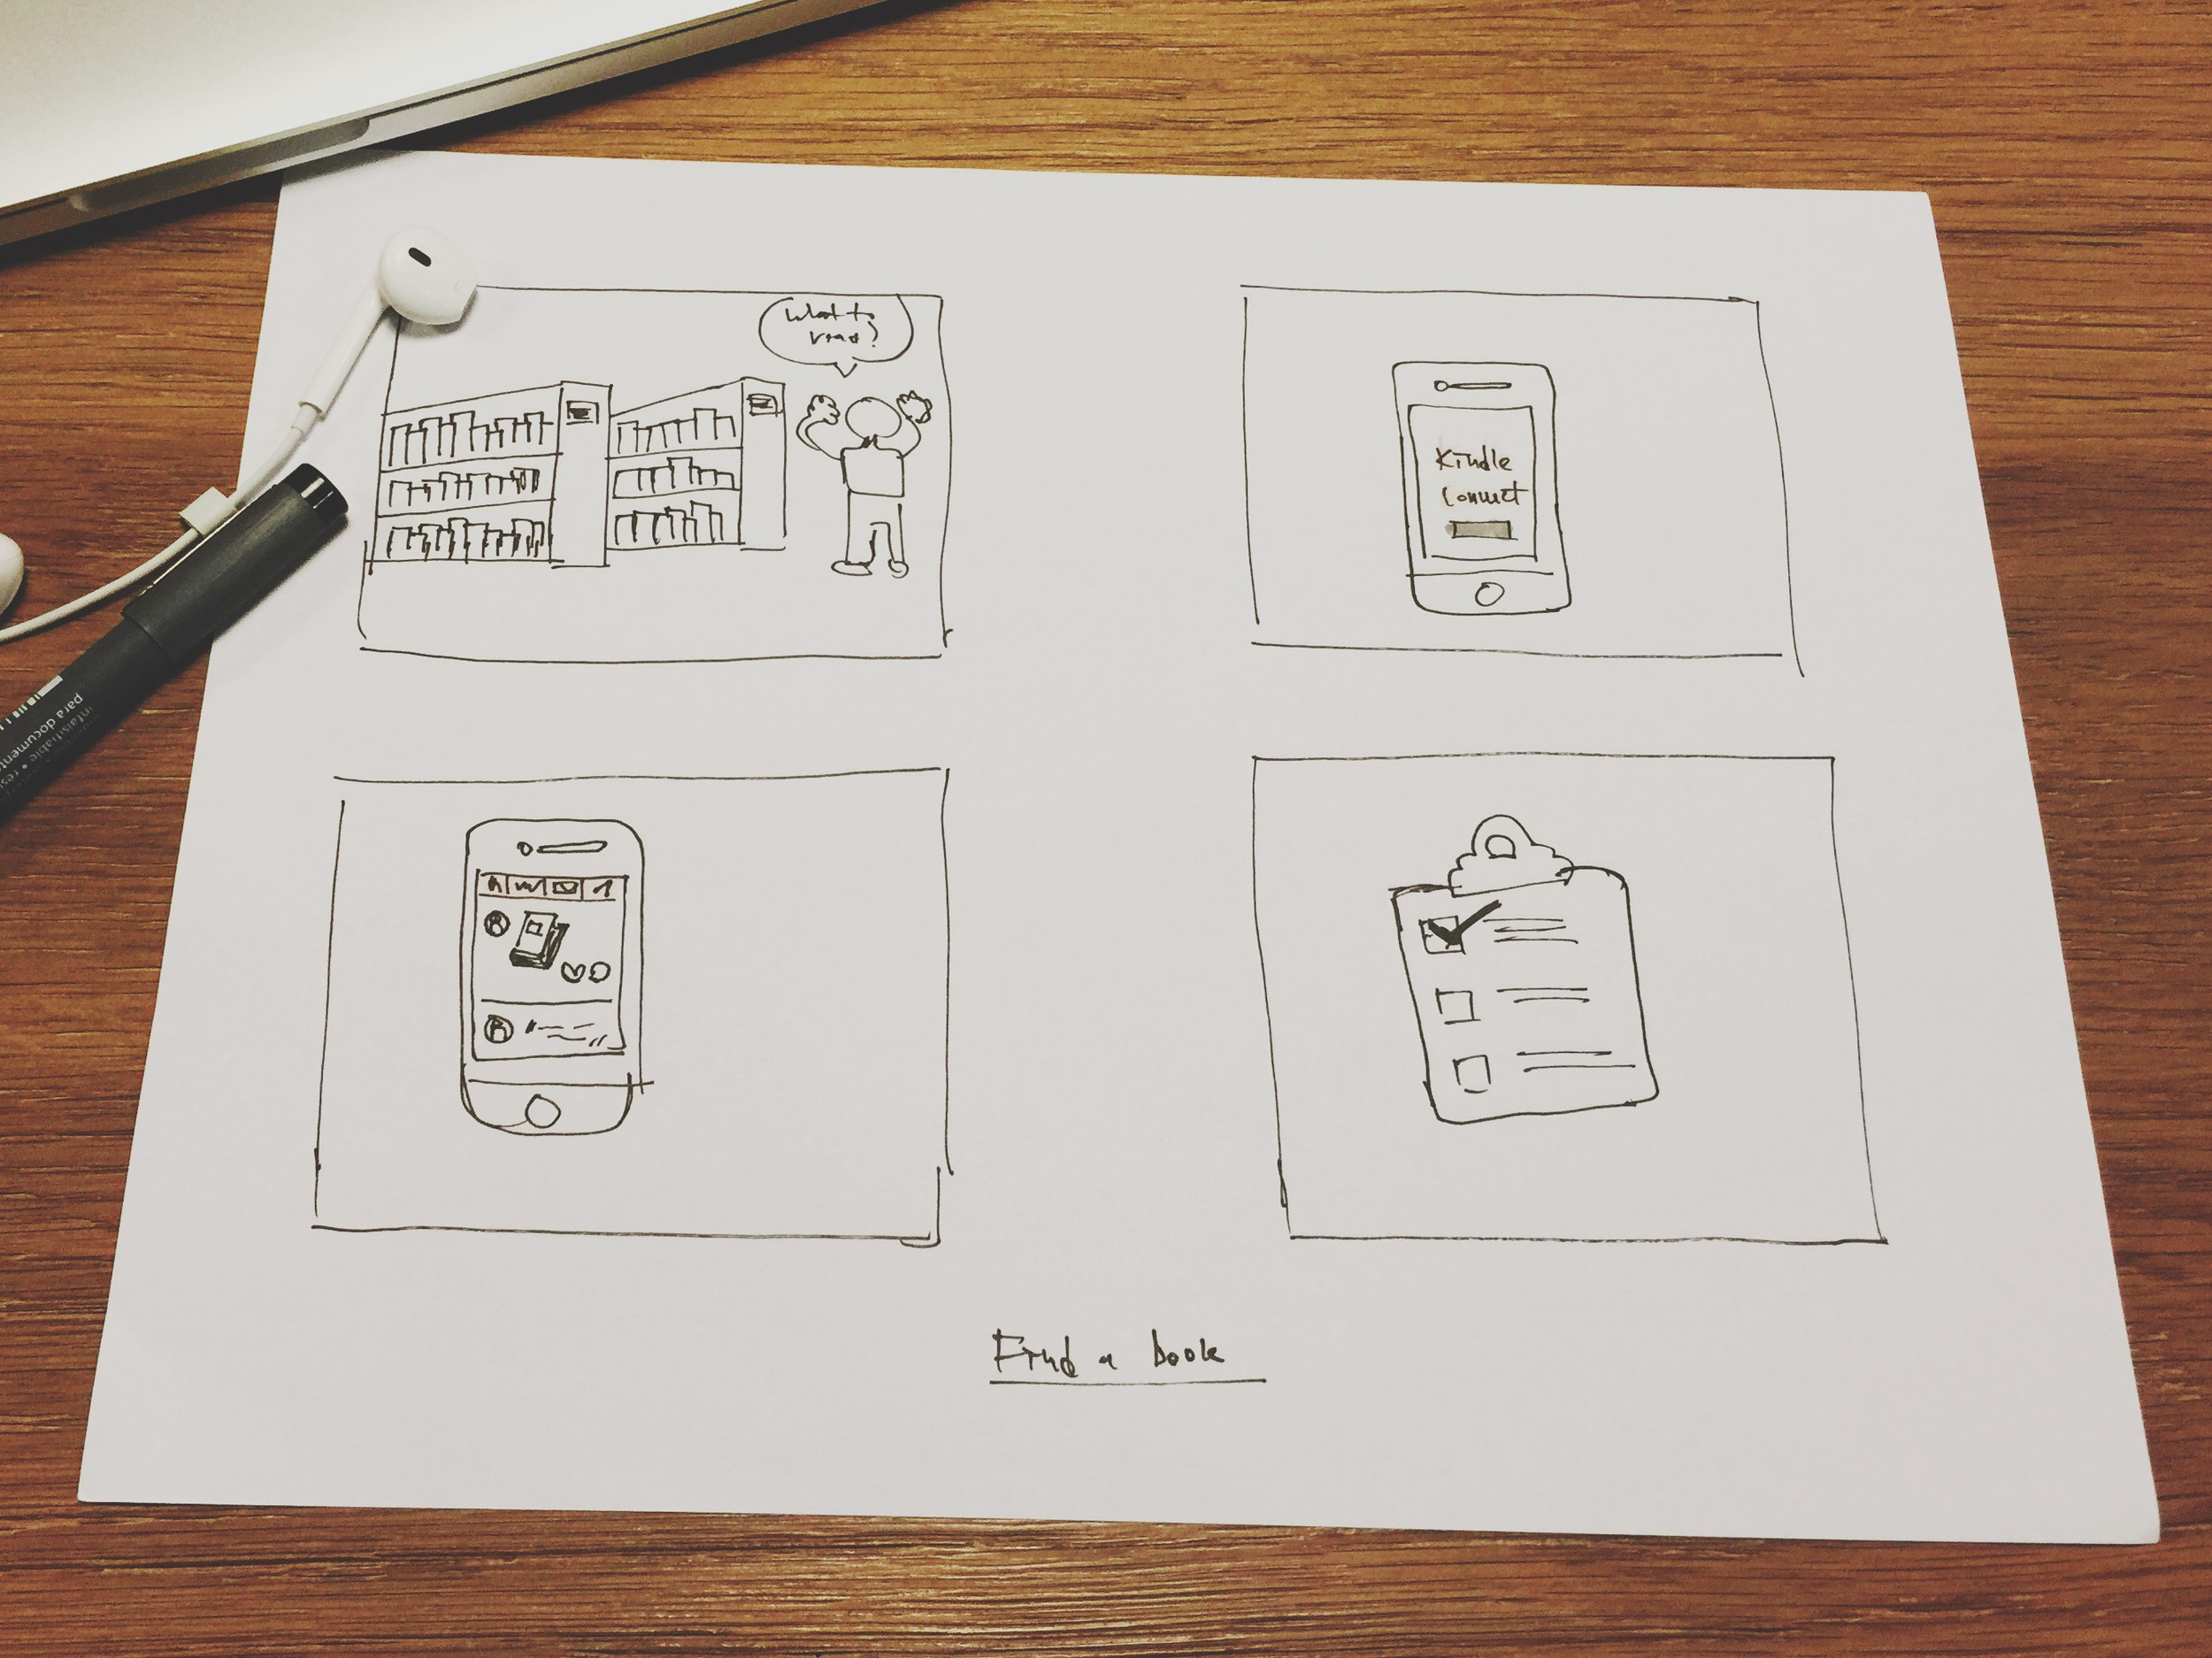 Storyboard // Find a book